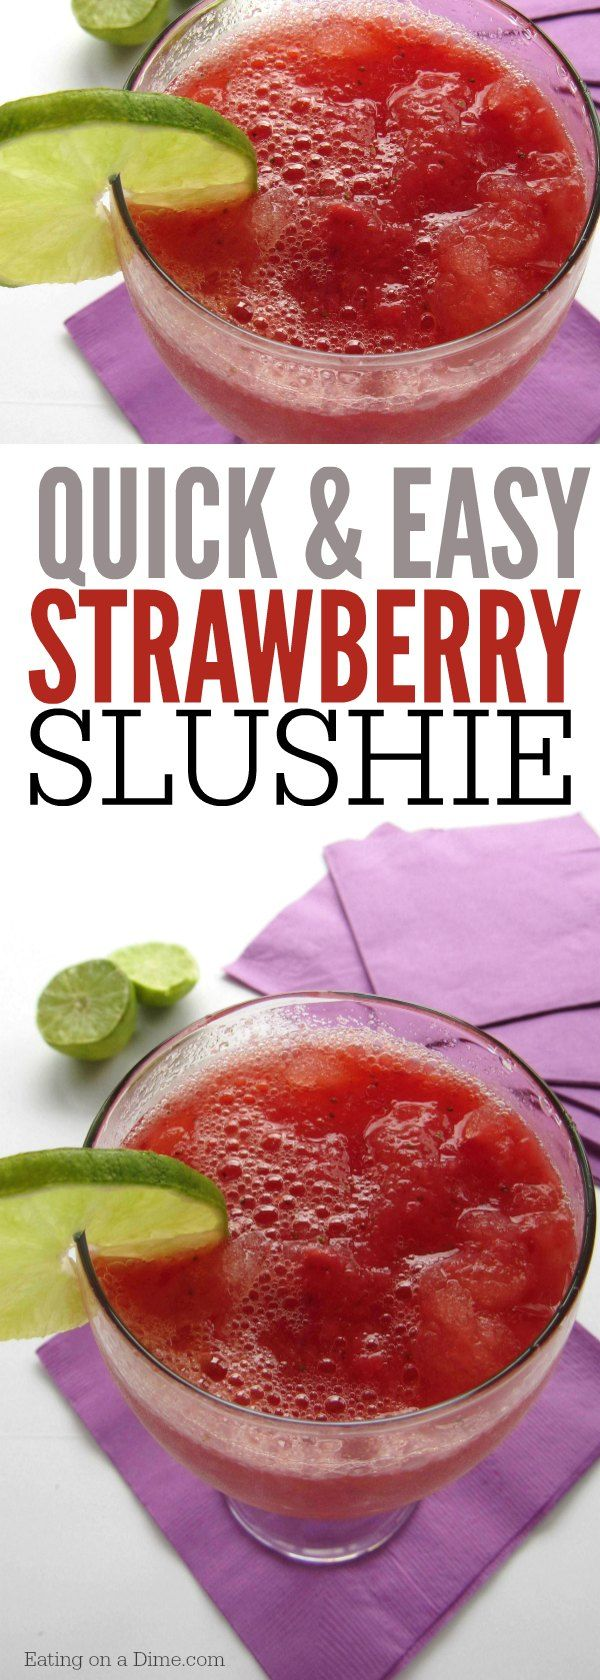 Quick and Easy Strawberry Slushie Recipe - Here is a kid friendly Summer drink that you can make in just a few minutes. Our favorite Easy Drink recipe.